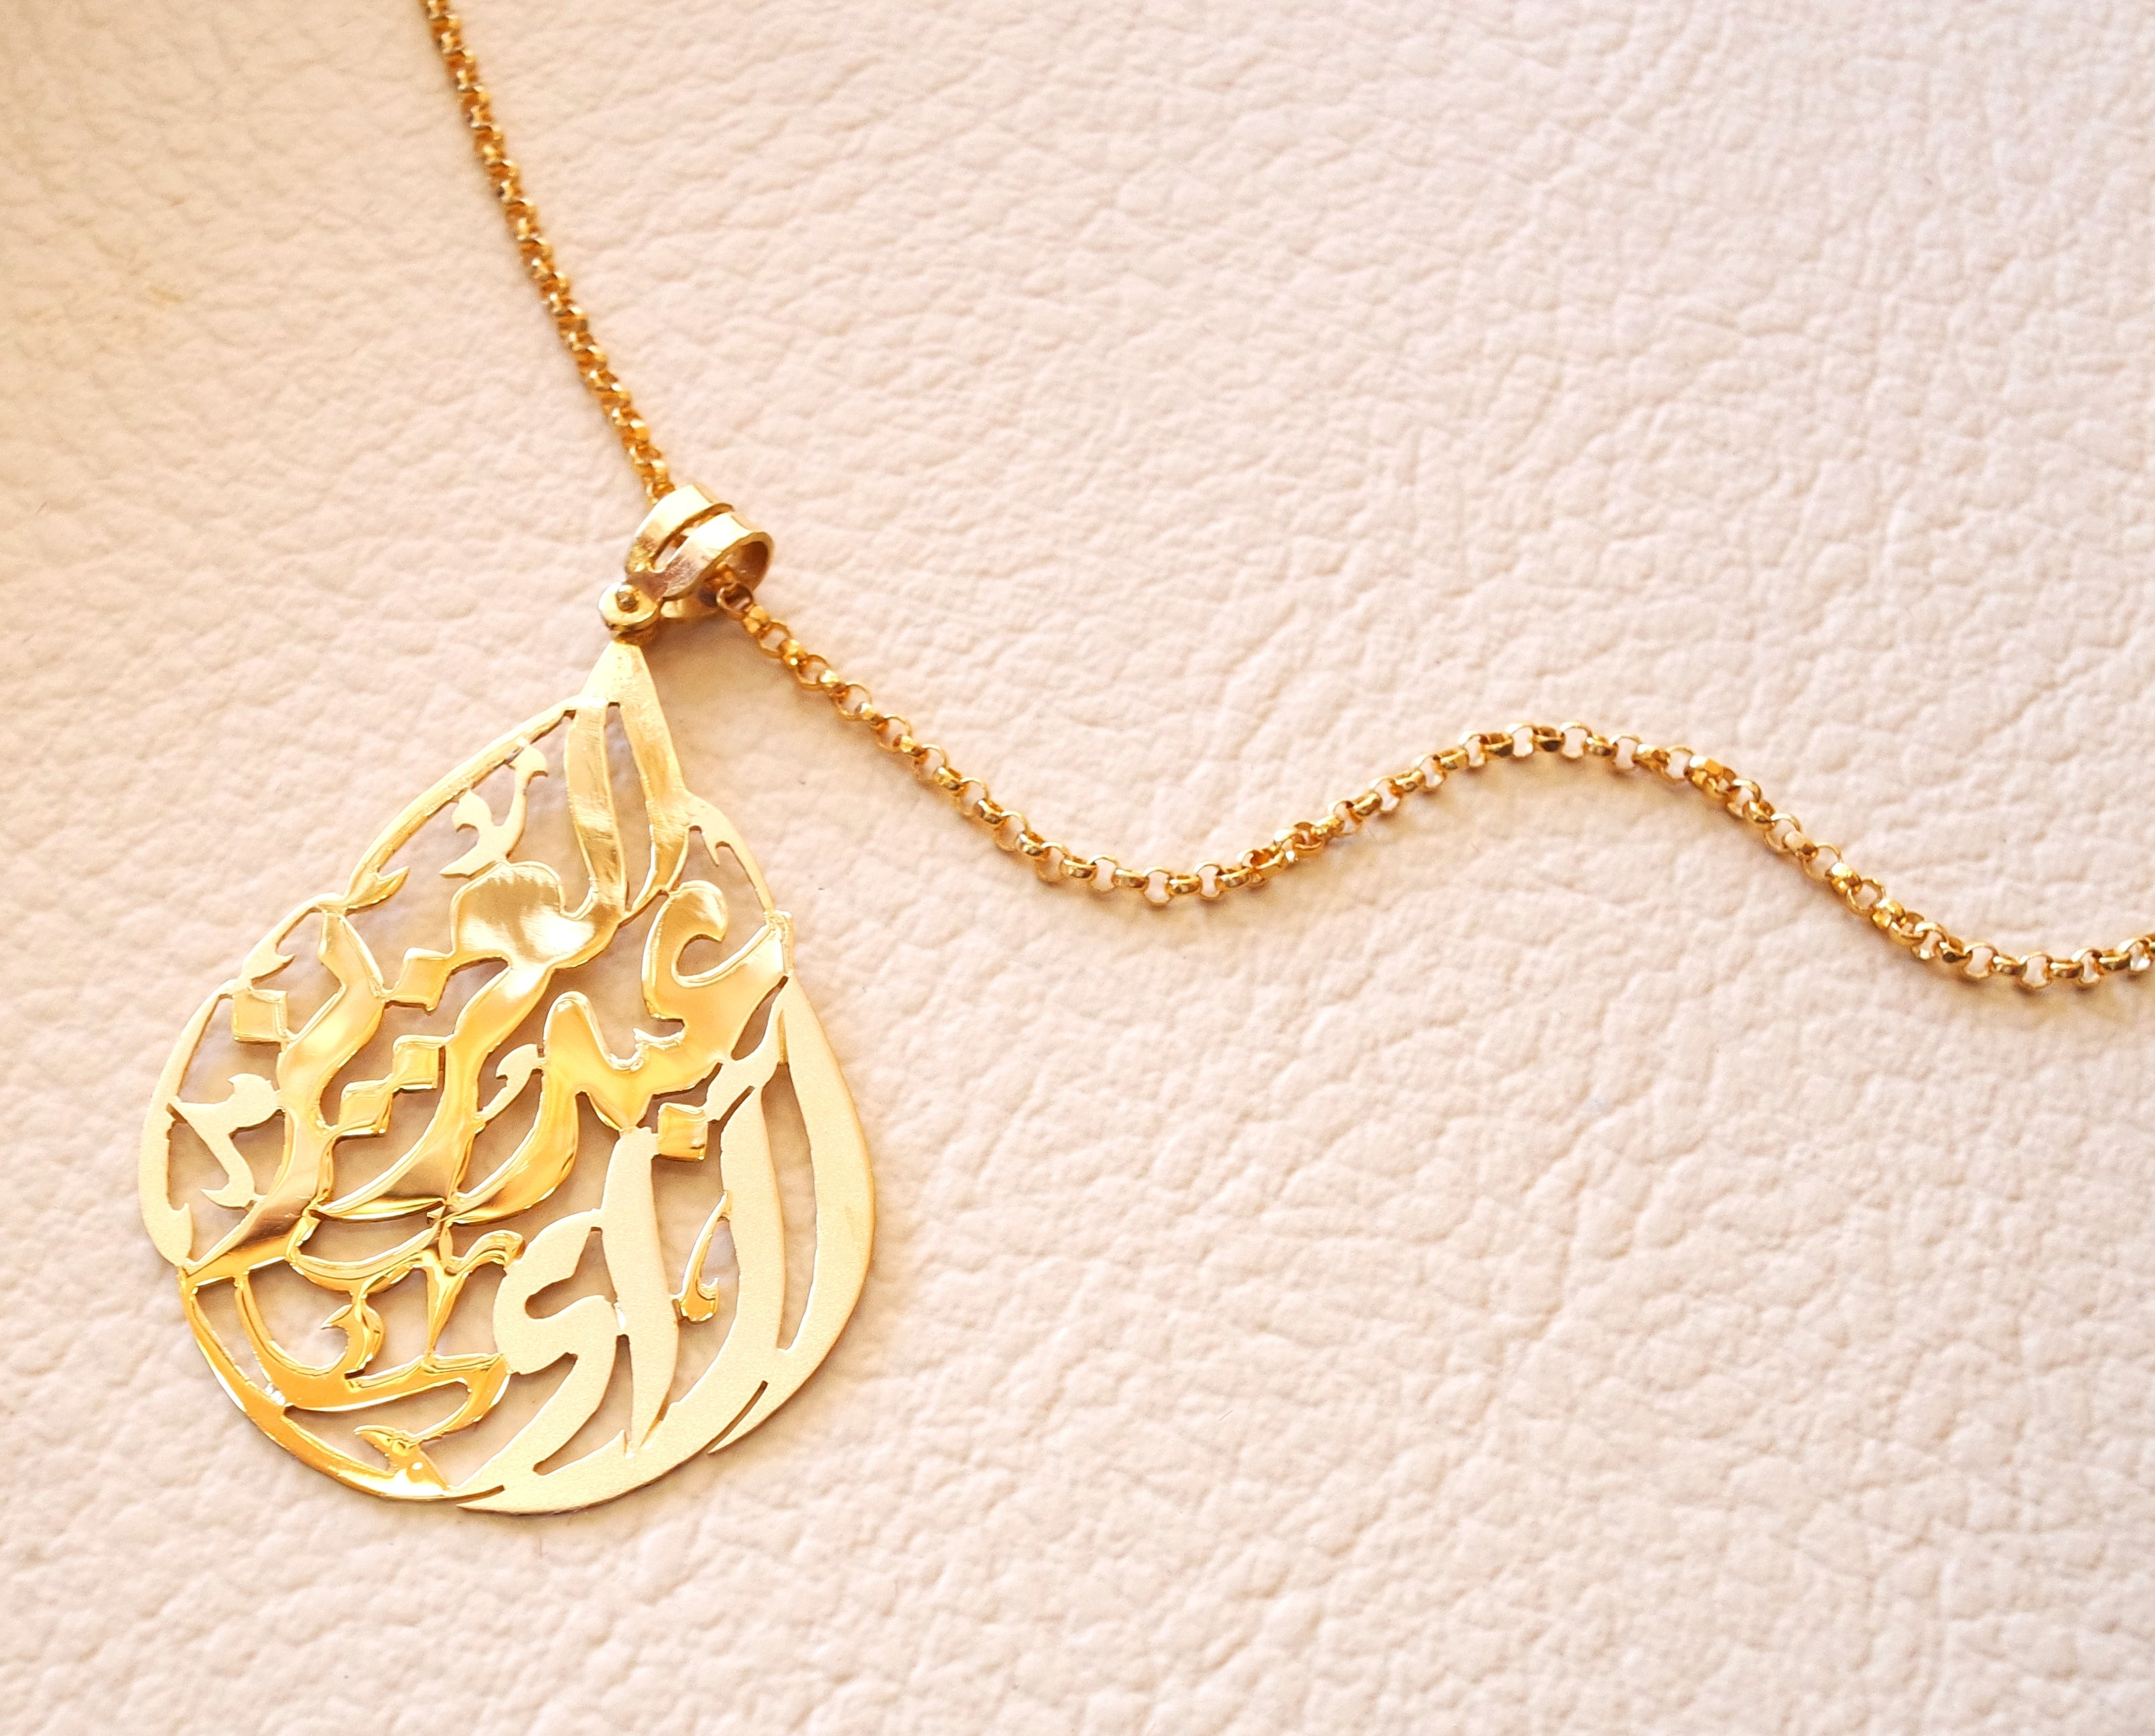 personalized customized 2 names 18 k gold arabic calligraphy pendant with chain pear , round rectangular or any shape fine jewelry